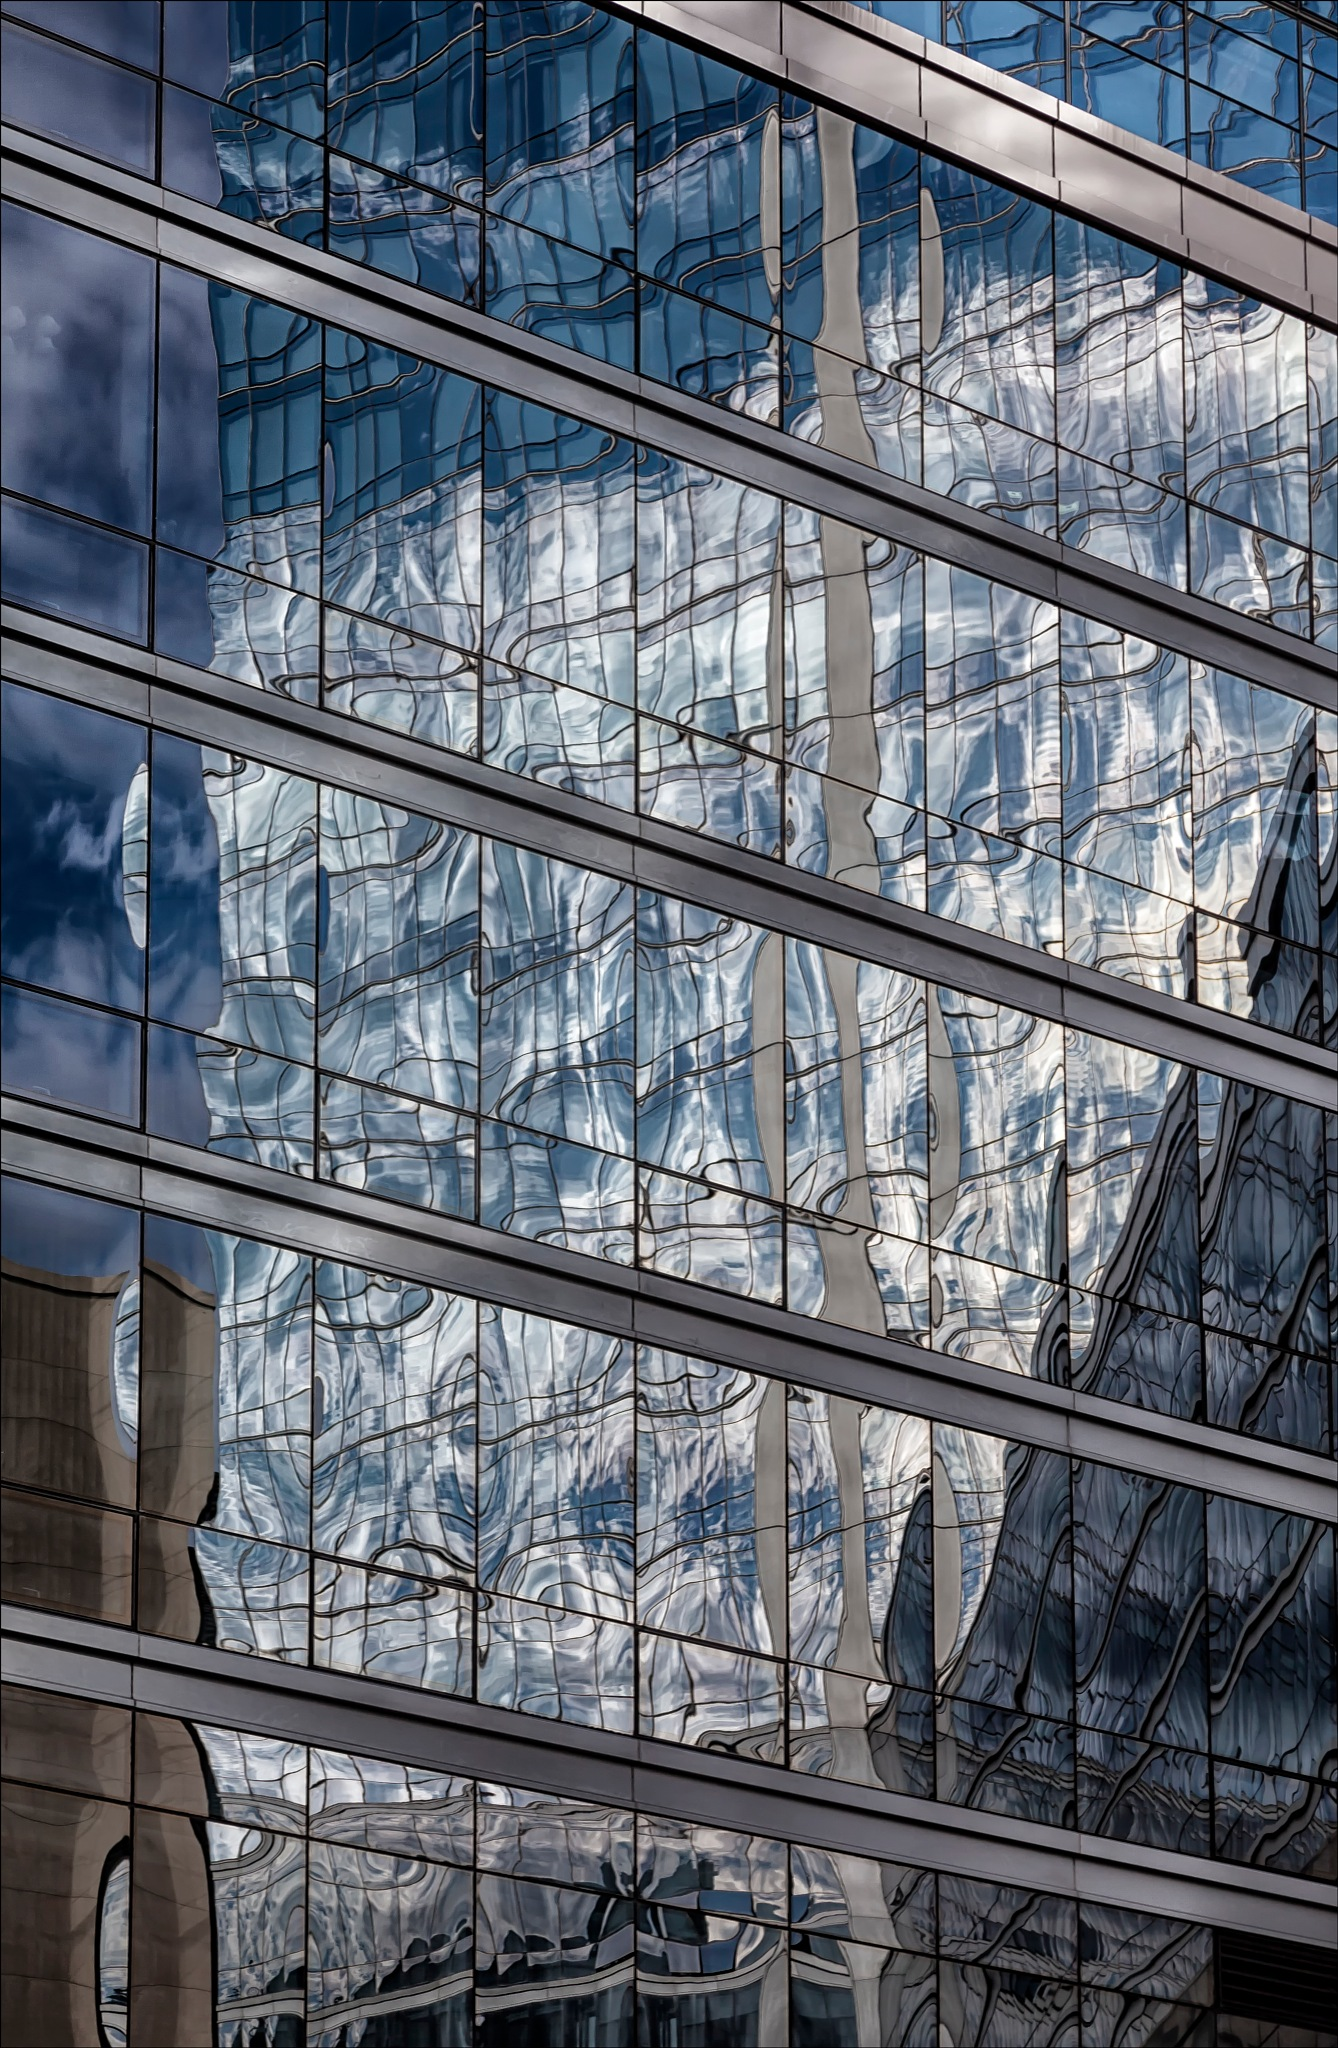 Reflective Glass Architecture by robertullmann